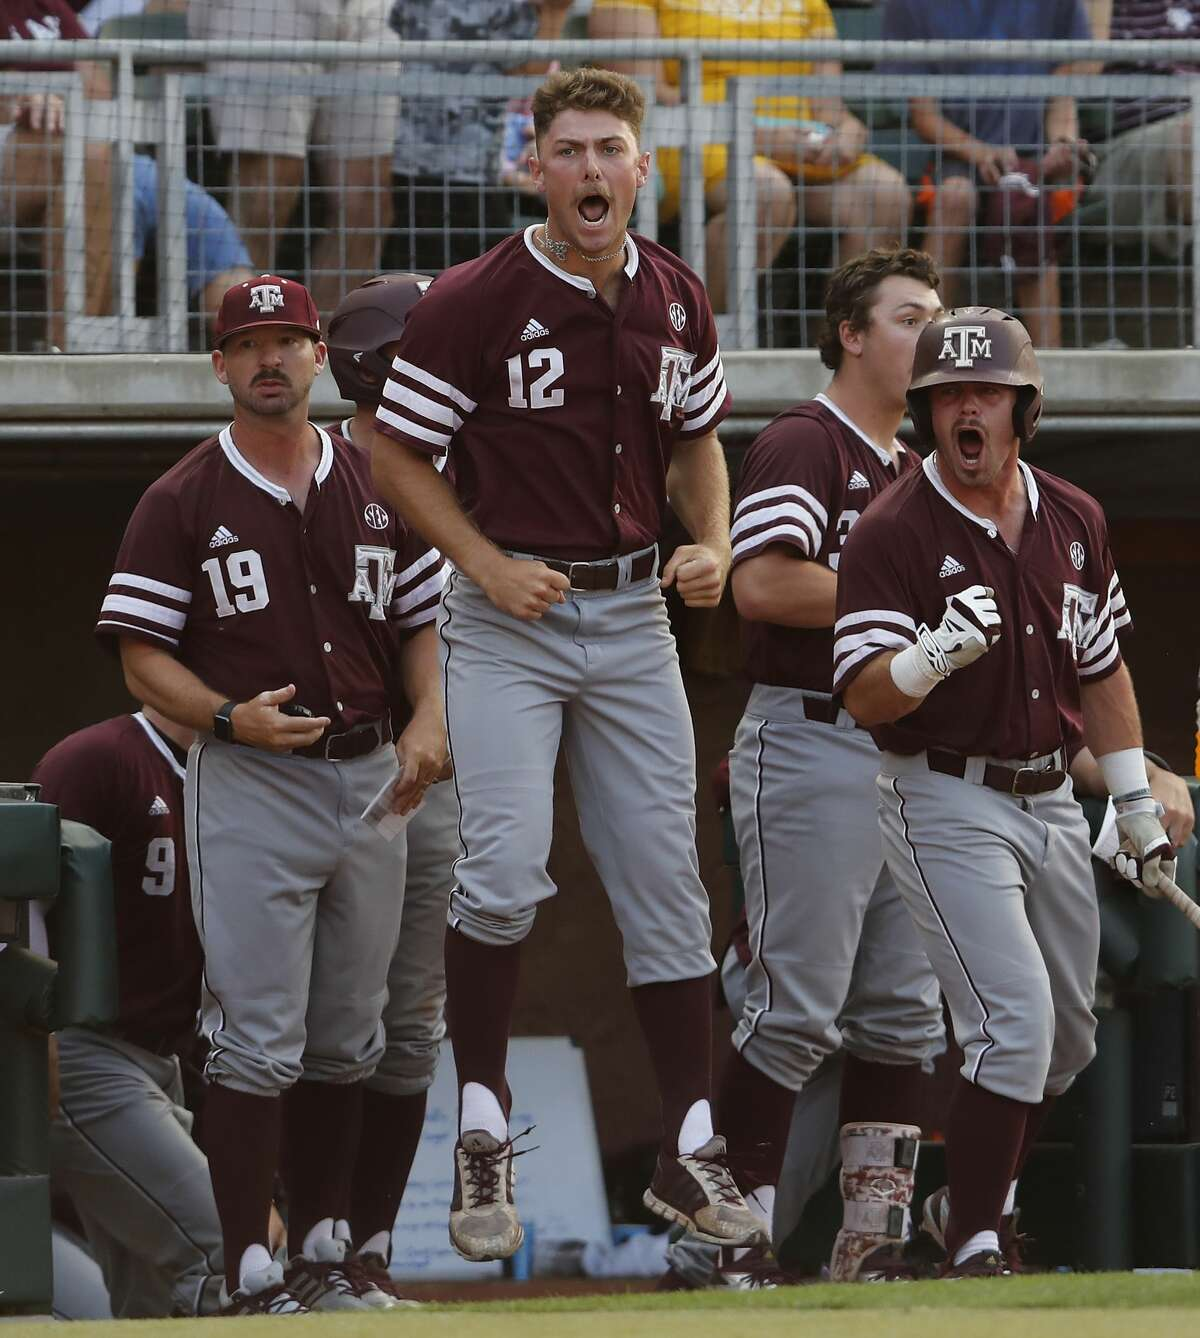 Texas A&M pitcher Corbin Martin (12) celebrates with teammates after an error in the eighth inning that scored a run during the 2017 NCAA Super Regional baseball game between the Davidson Wildcats and the Texas A&M Aggies at Blue Bell Park on Saturday, June 10, 2017, in College Station, TX.